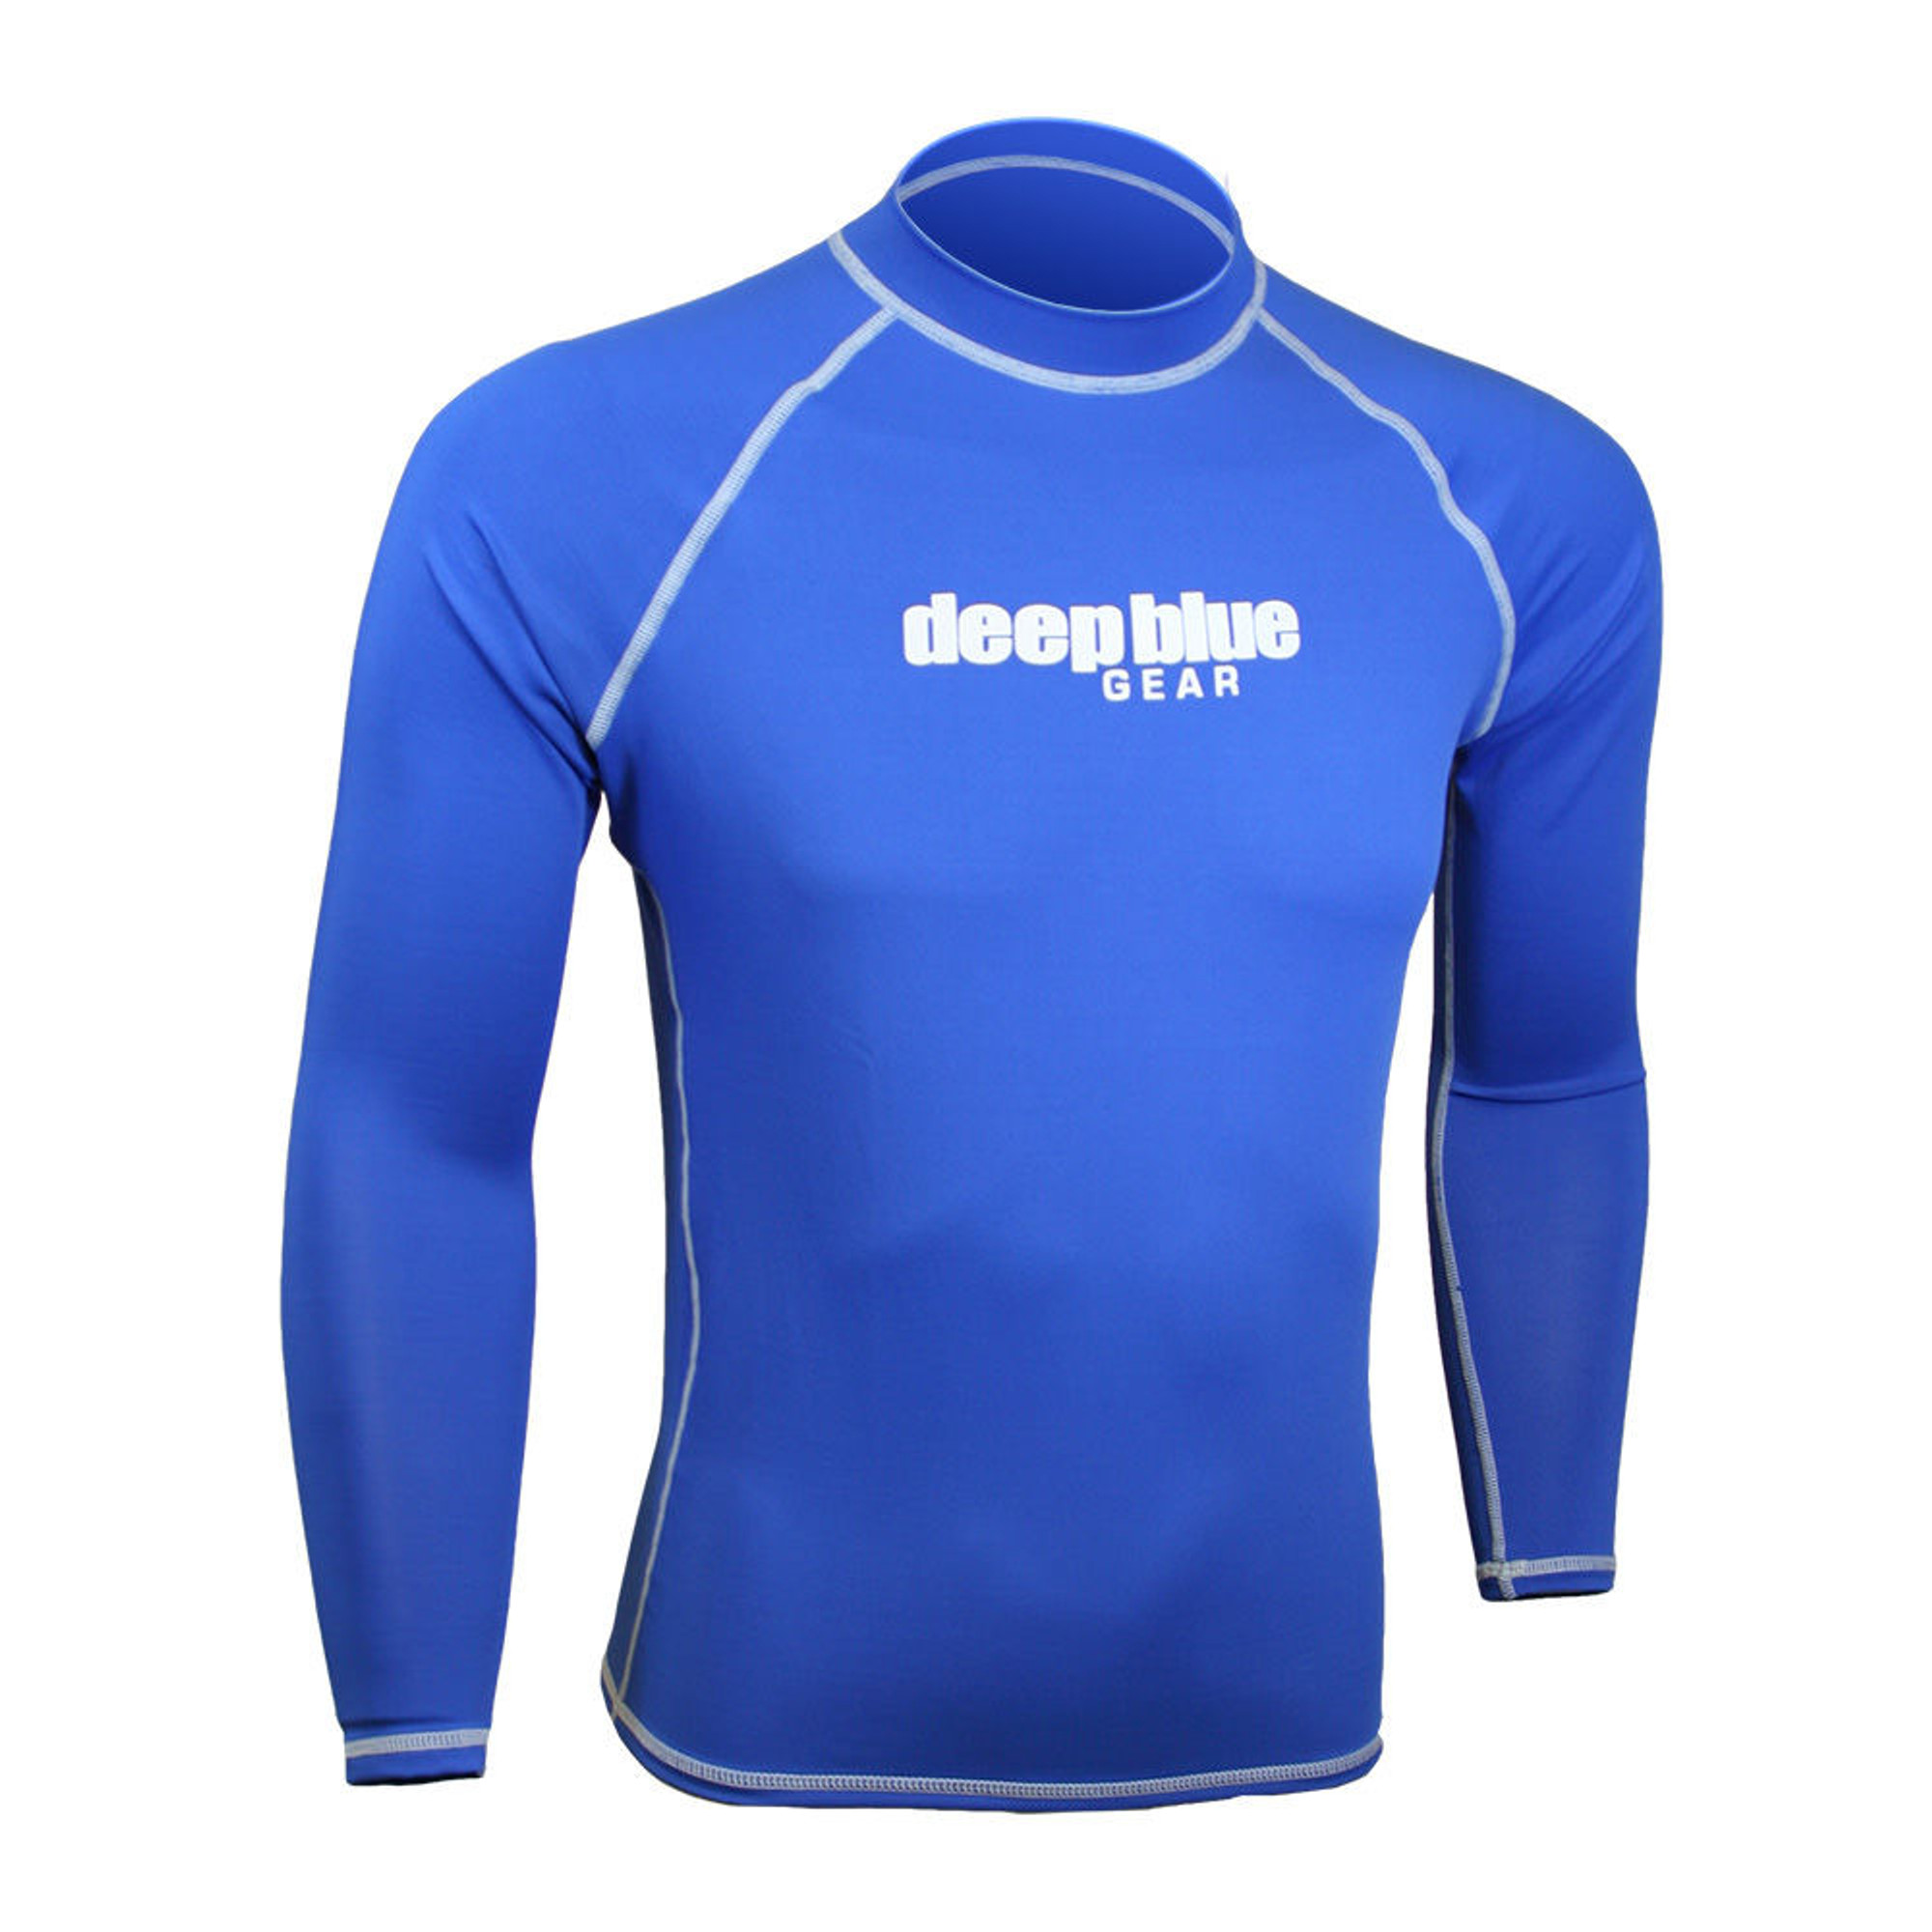 Men's Long Sleeve Rashguard